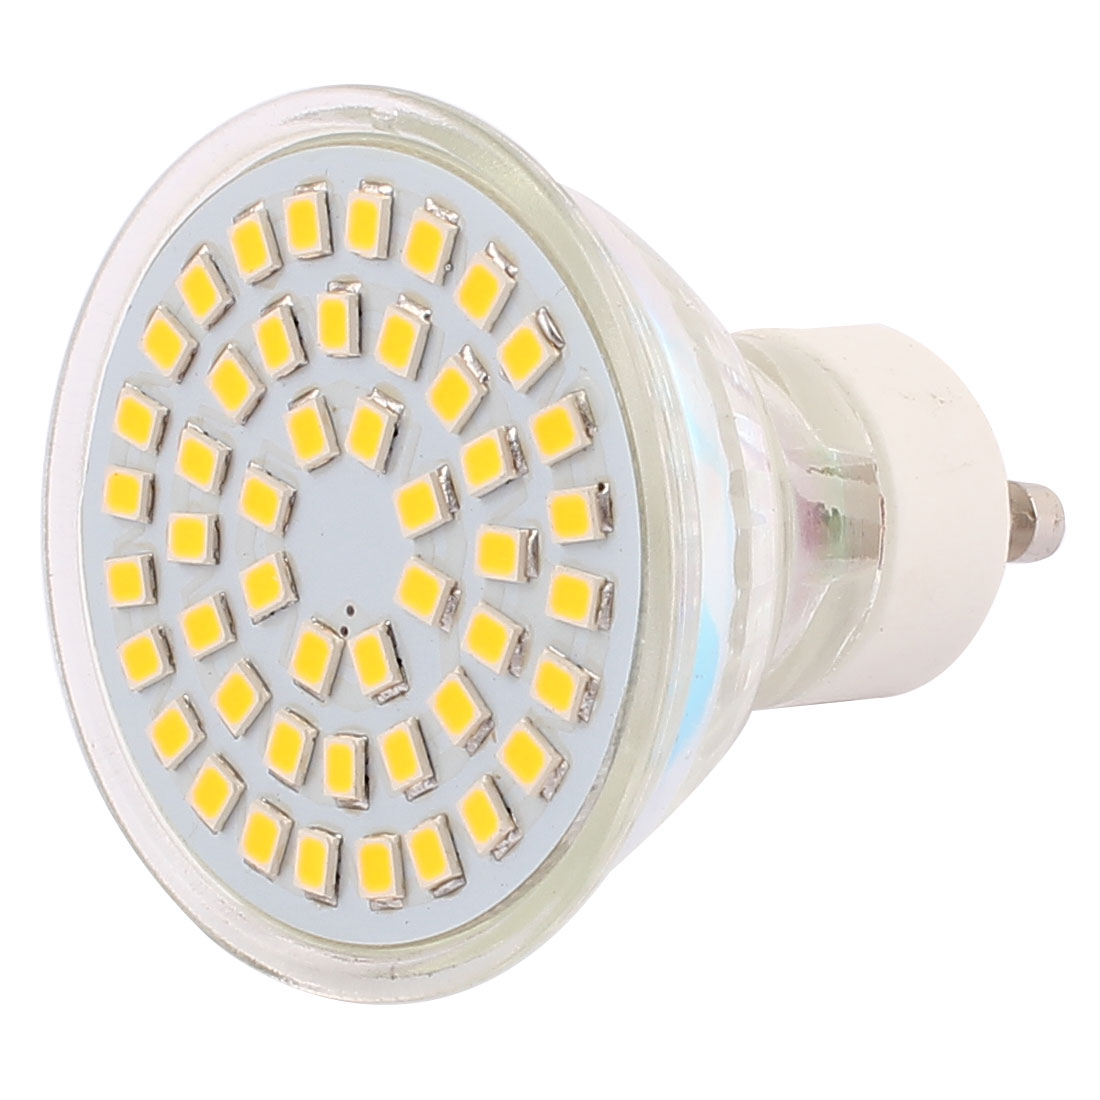 110V-GU10-LED-Light-4W-2835-SMD-48-LEDs-Spotlight-Lamp-Bulb-Lighting-Warm-White